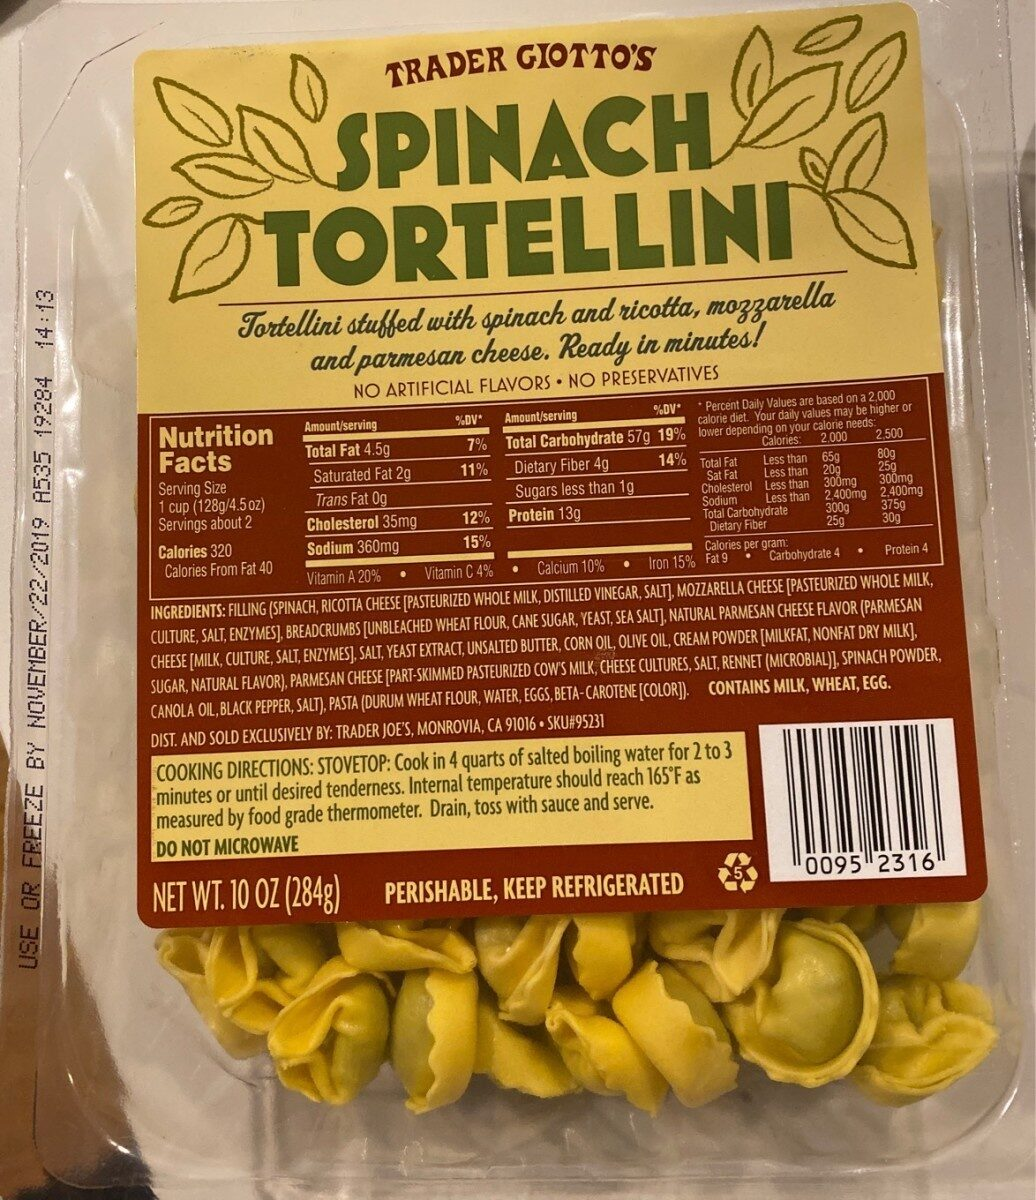 Tortellini spinach - Product